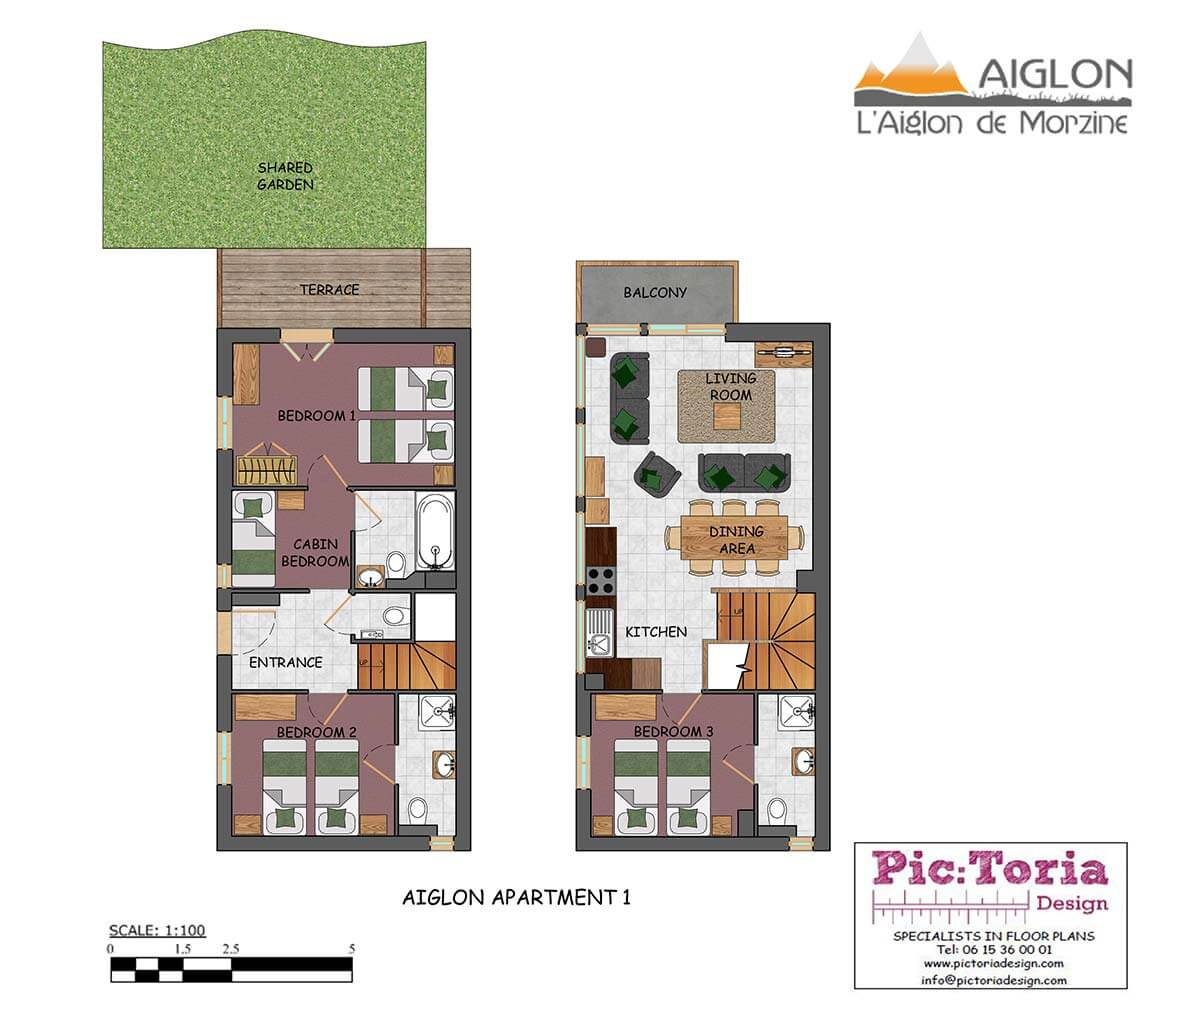 Image of Aiglon Morzine apartment 1 floor plan